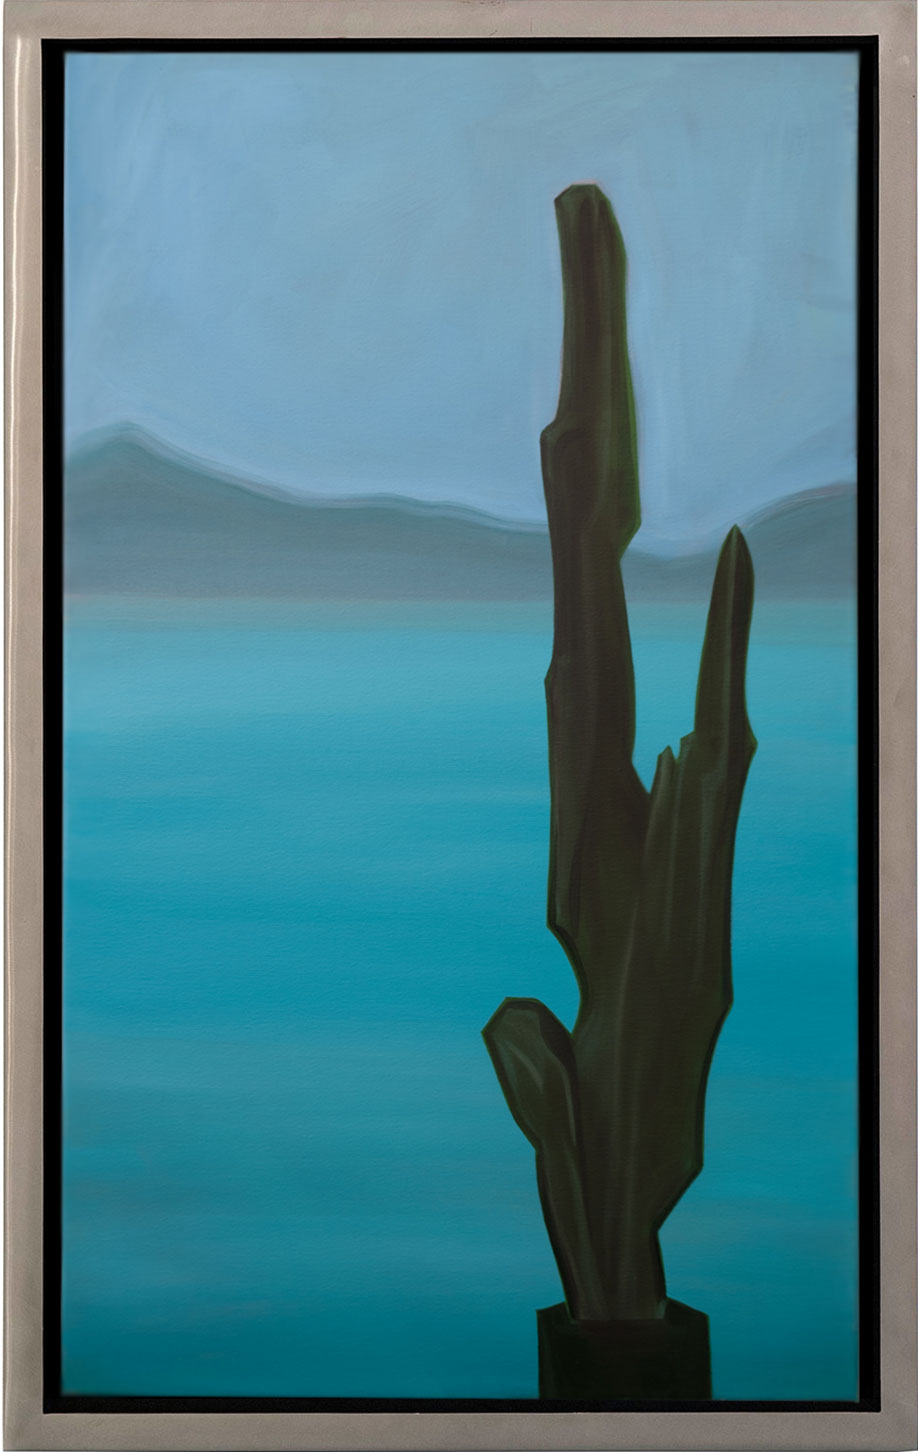 <b>Title:&nbsp;</b>Cactus<br /><b>Year:&nbsp;</b>2015<br /><b>Medium:&nbsp;</b>Oil on canvas<br /><b>Size:&nbsp;</b>98 x 63 cm